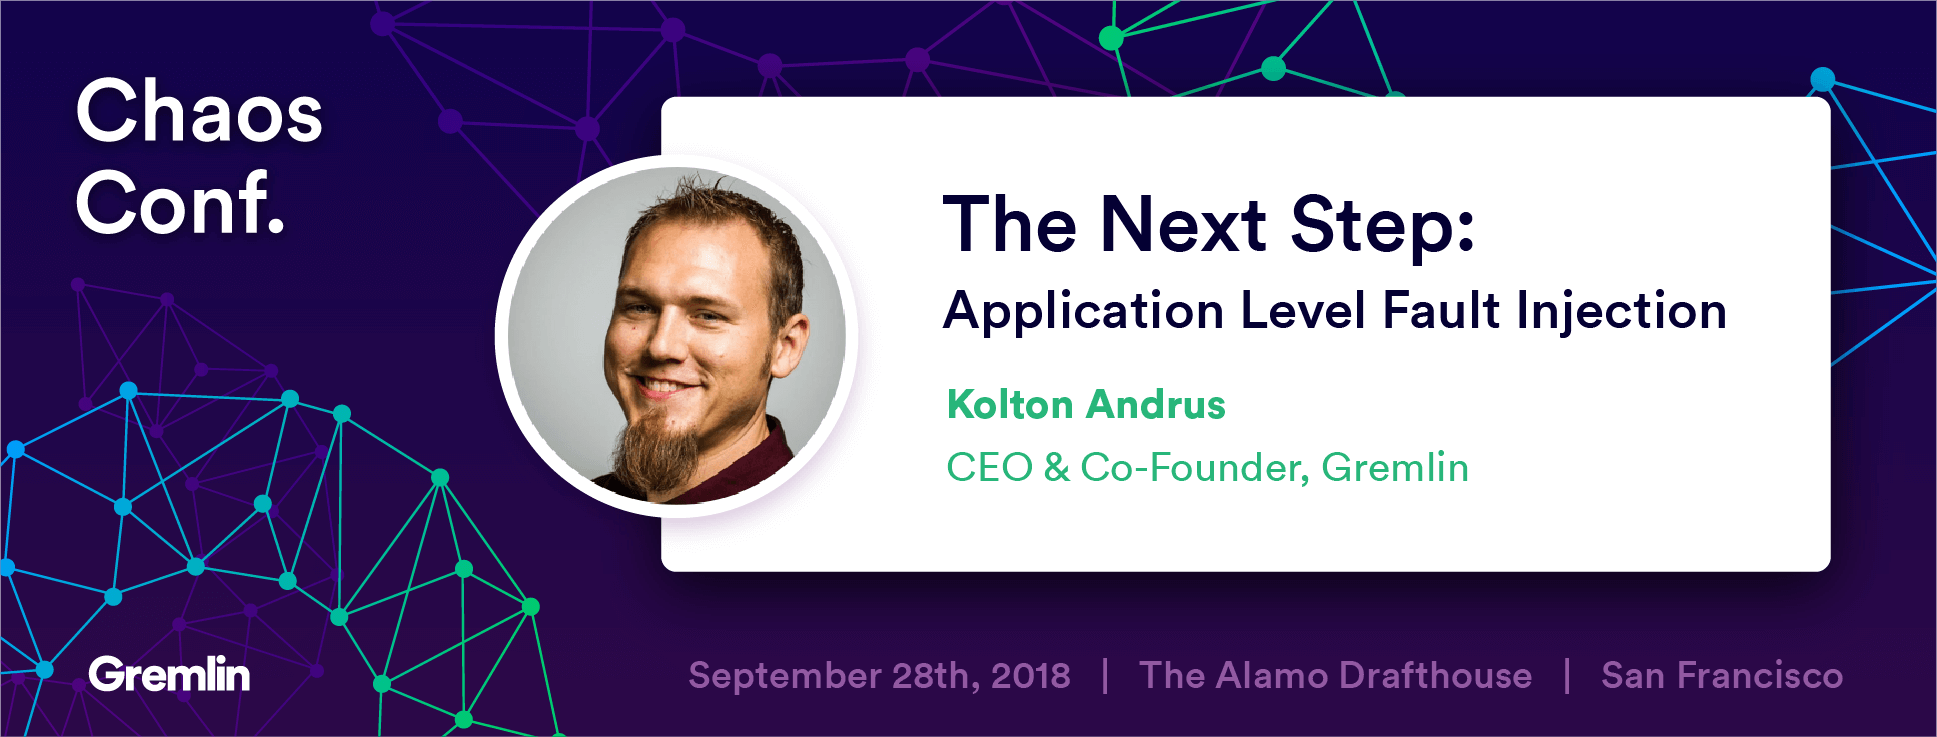 "Transcript: Kolton Andrus: ""The Next Step: Application Level Fault Injection"" - Chaos Conf 2018"